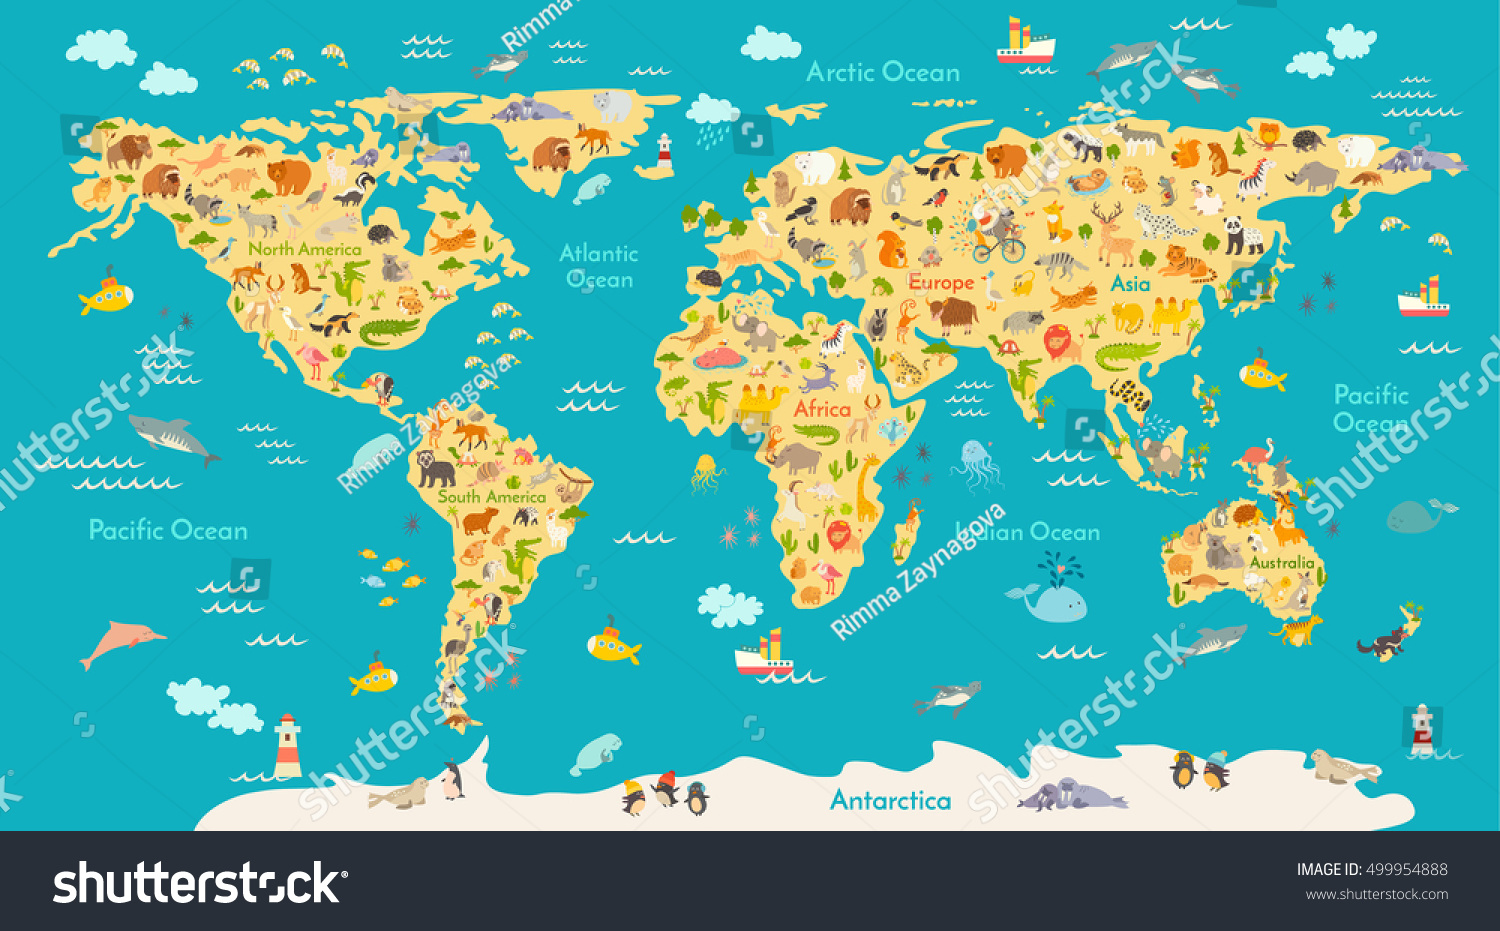 Animal map kid world vector poster vectores en stock 499954888 animal map for kid world vector poster for children cute illustrated preschool cartoon gumiabroncs Choice Image